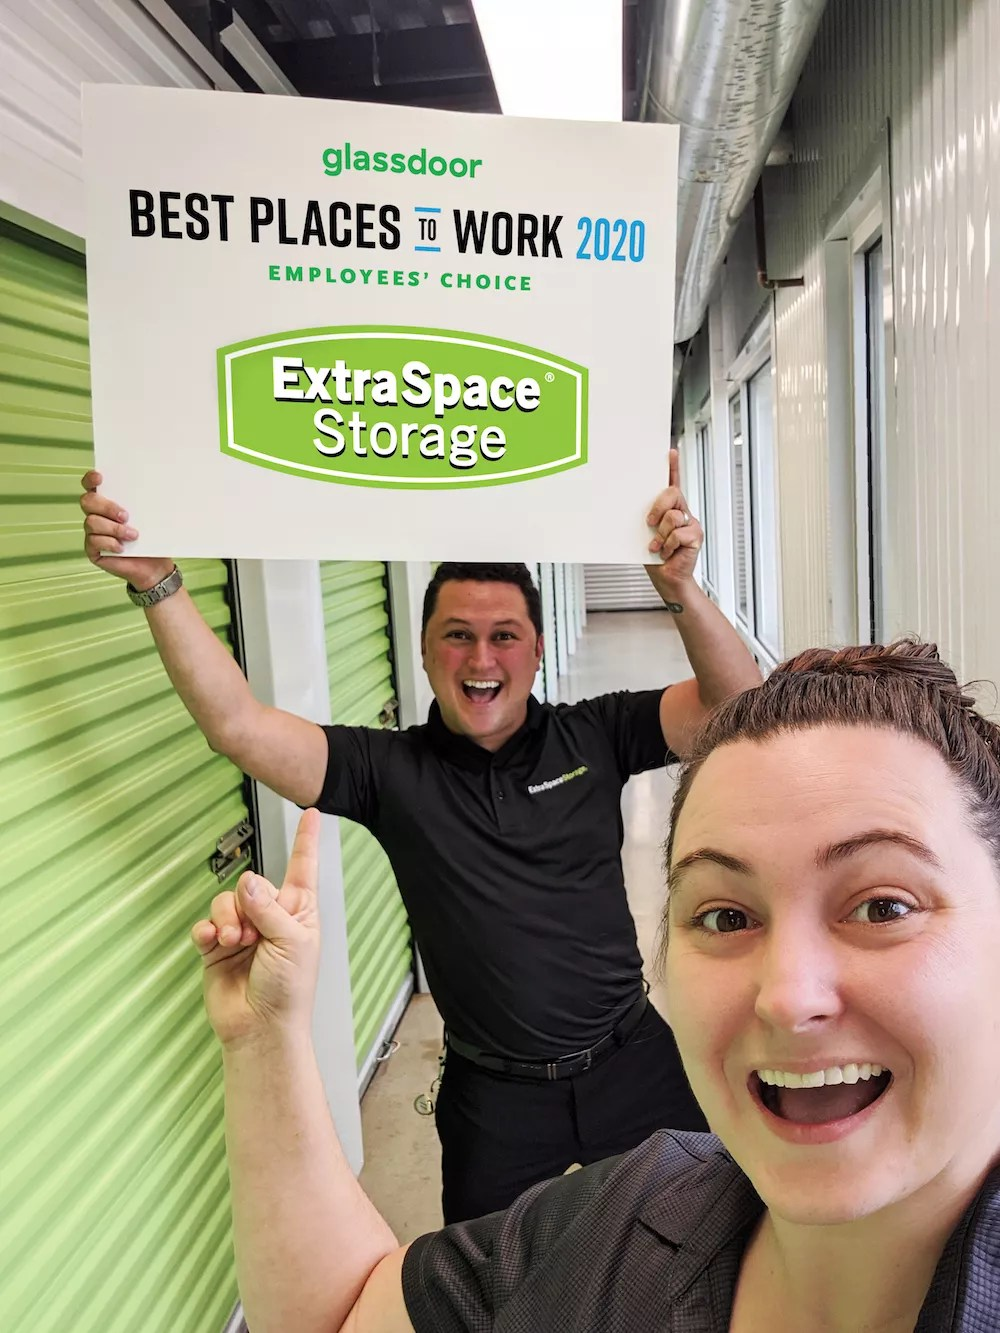 Extra Space Storage team members holding sign that says Glassdoor Best Places to Work 2020